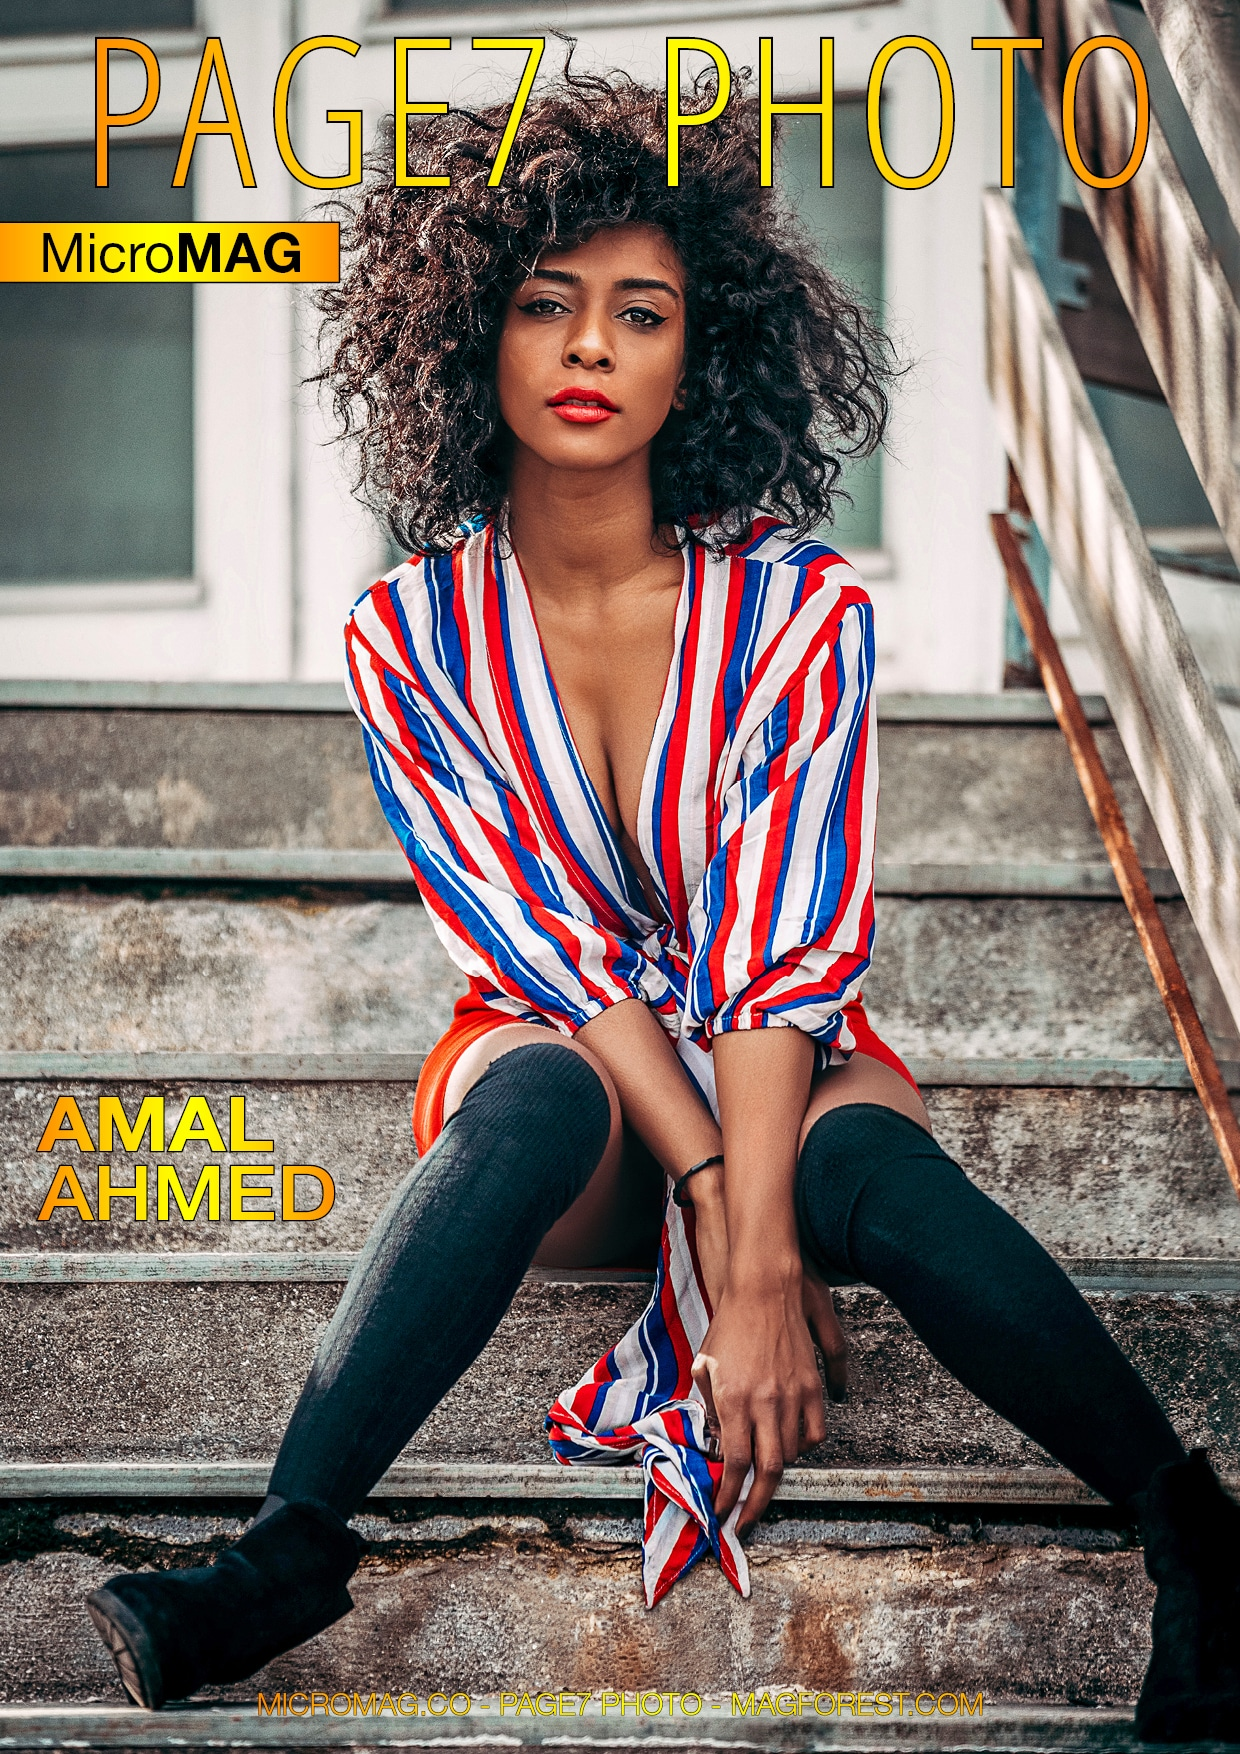 PAGE7 Photo MicroMAG - Amal Ahmed - Issue 2 1